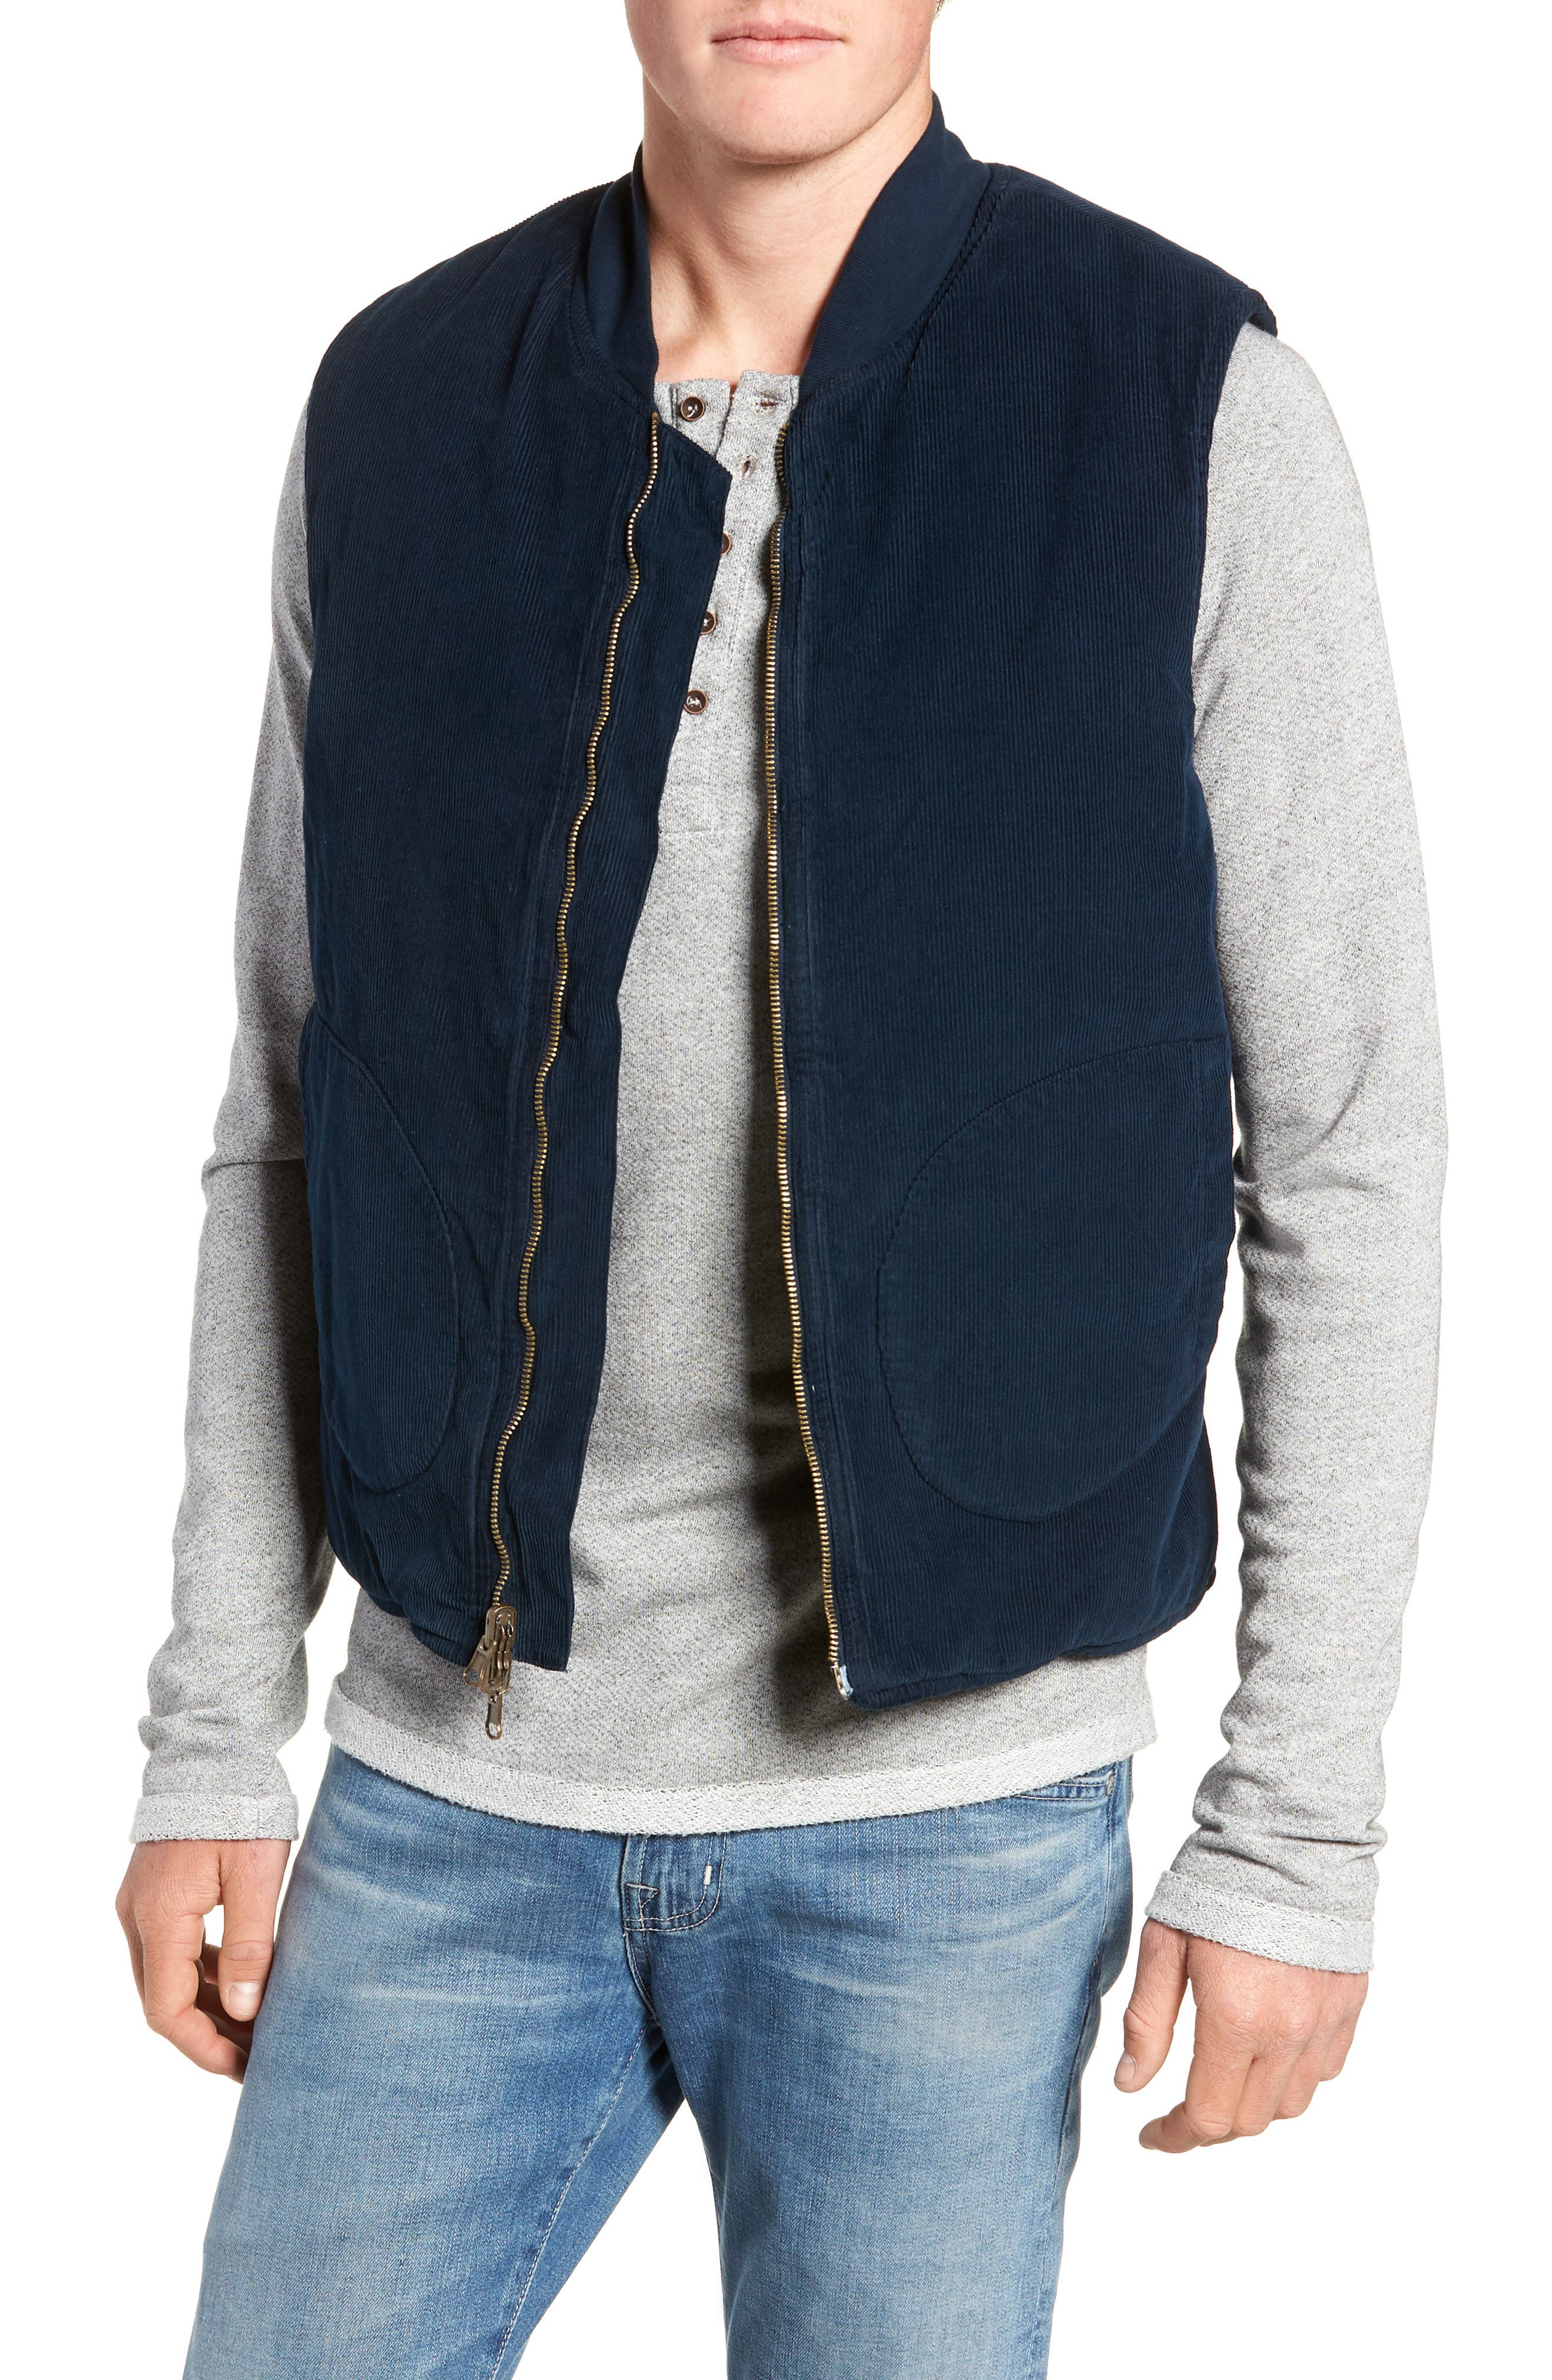 M.SINGER Regular Fit Reversible Miner's Vest, Main, color, 400